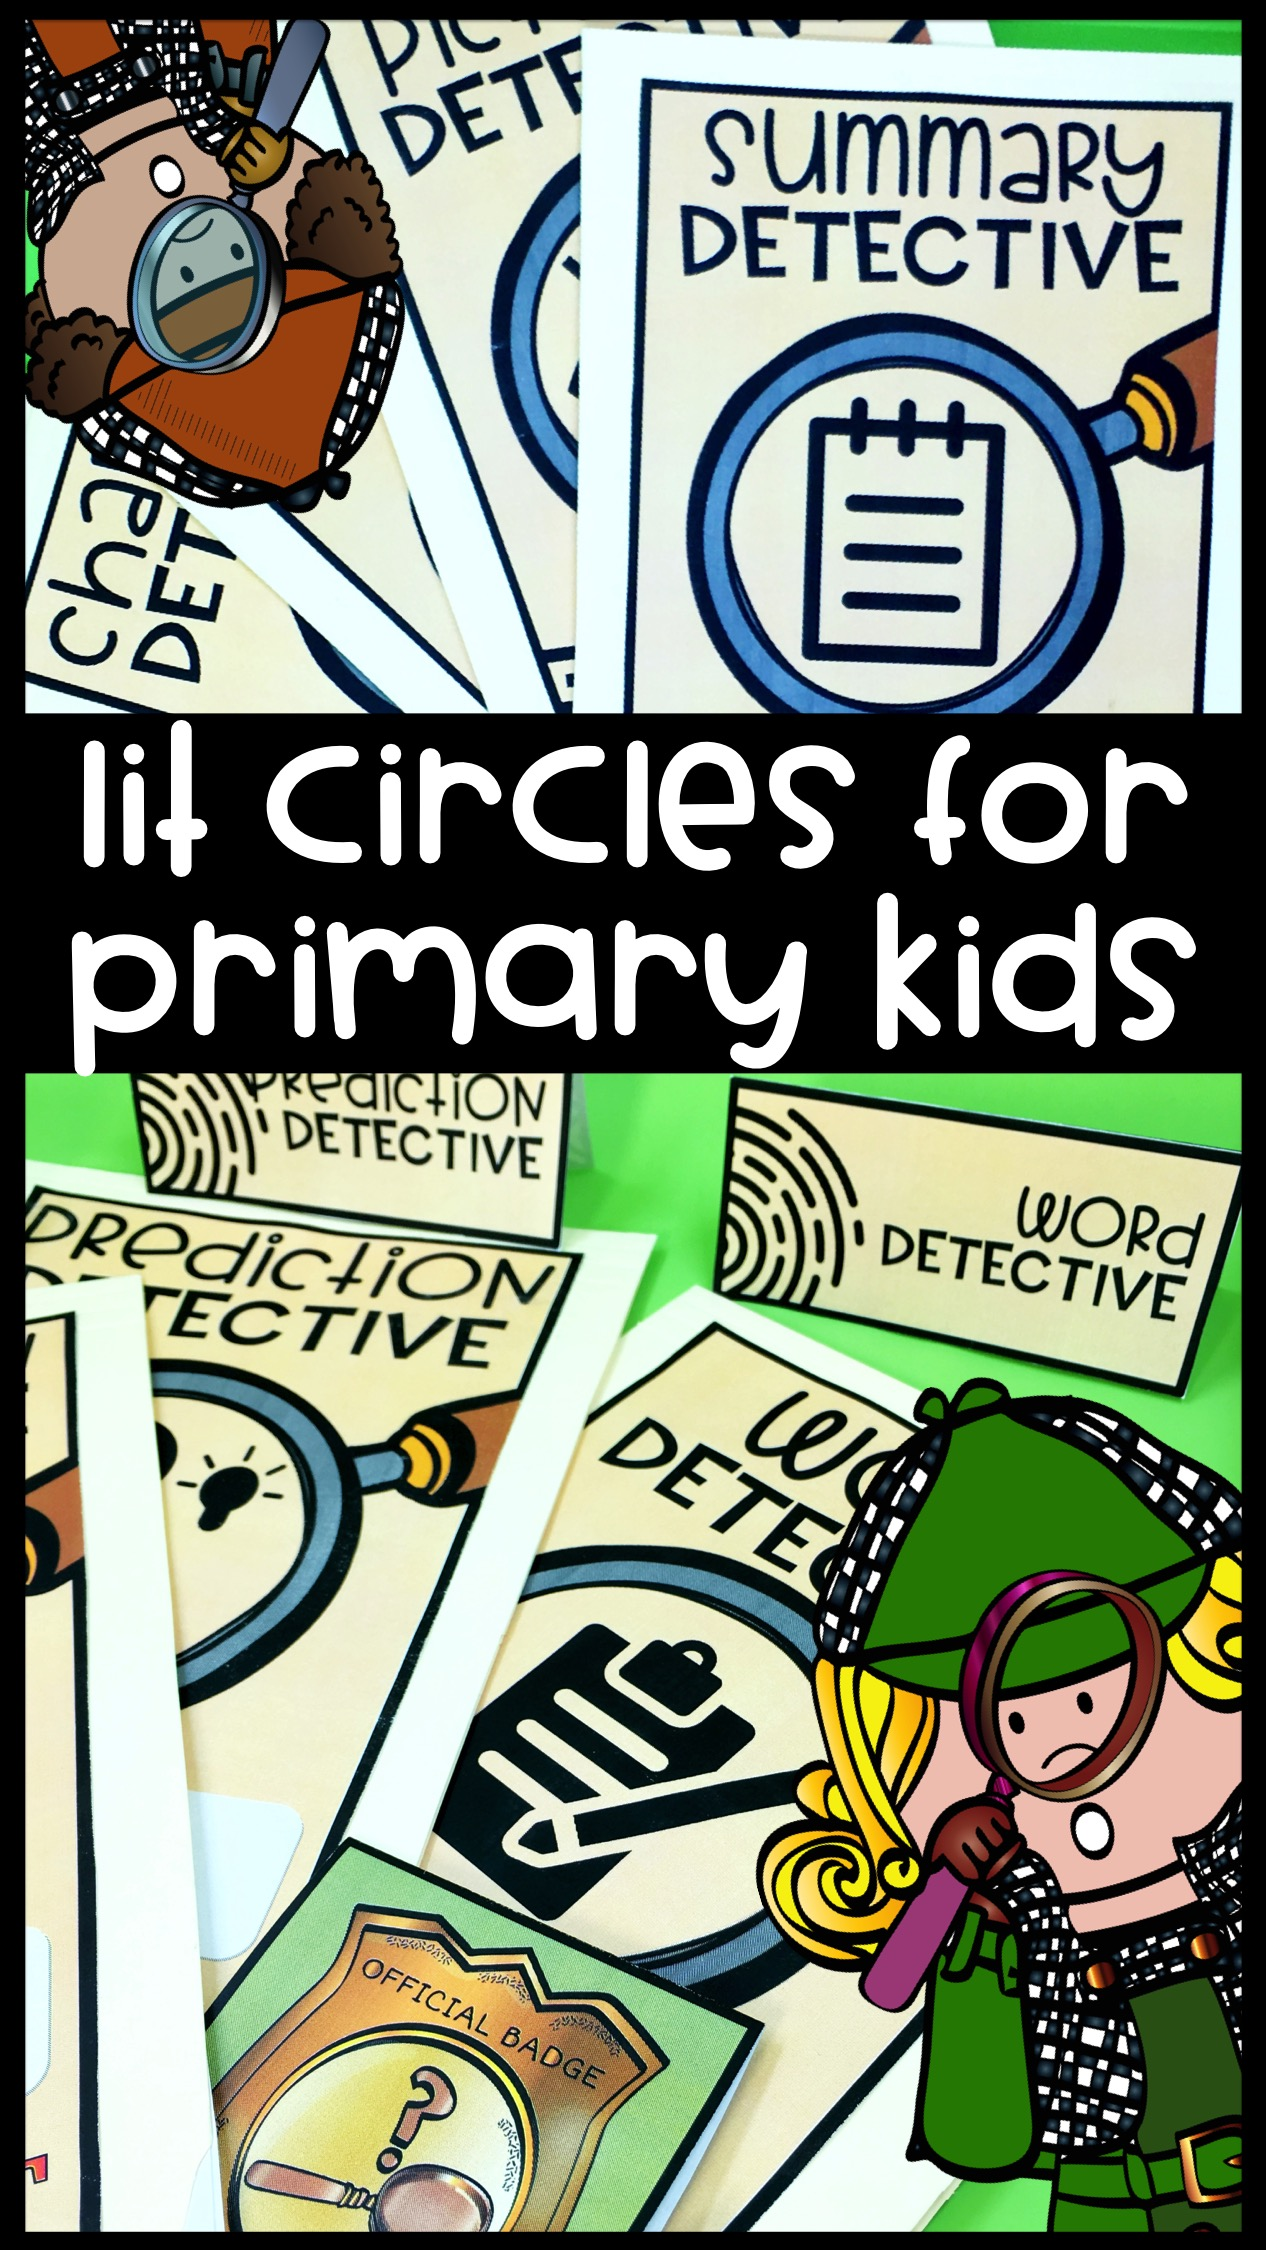 https://www.cupcakesncurriculum.com/wp-content/uploads/2017/09/Book-Detectives-Pin.jpg